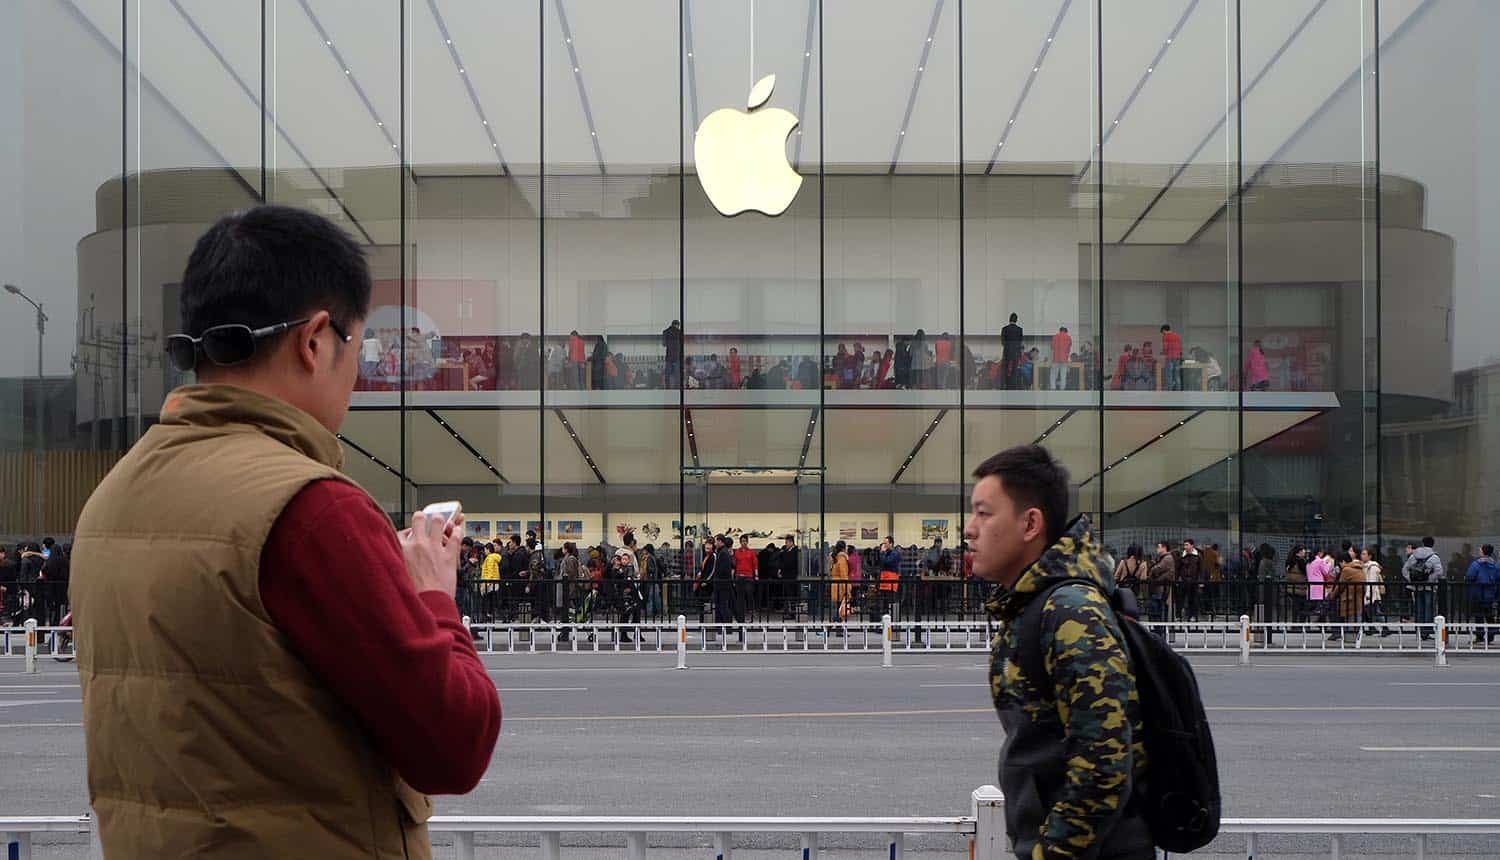 Apple flagship store in Hangzhou showing Chinese tech companies circumventing Apple's privacy rules